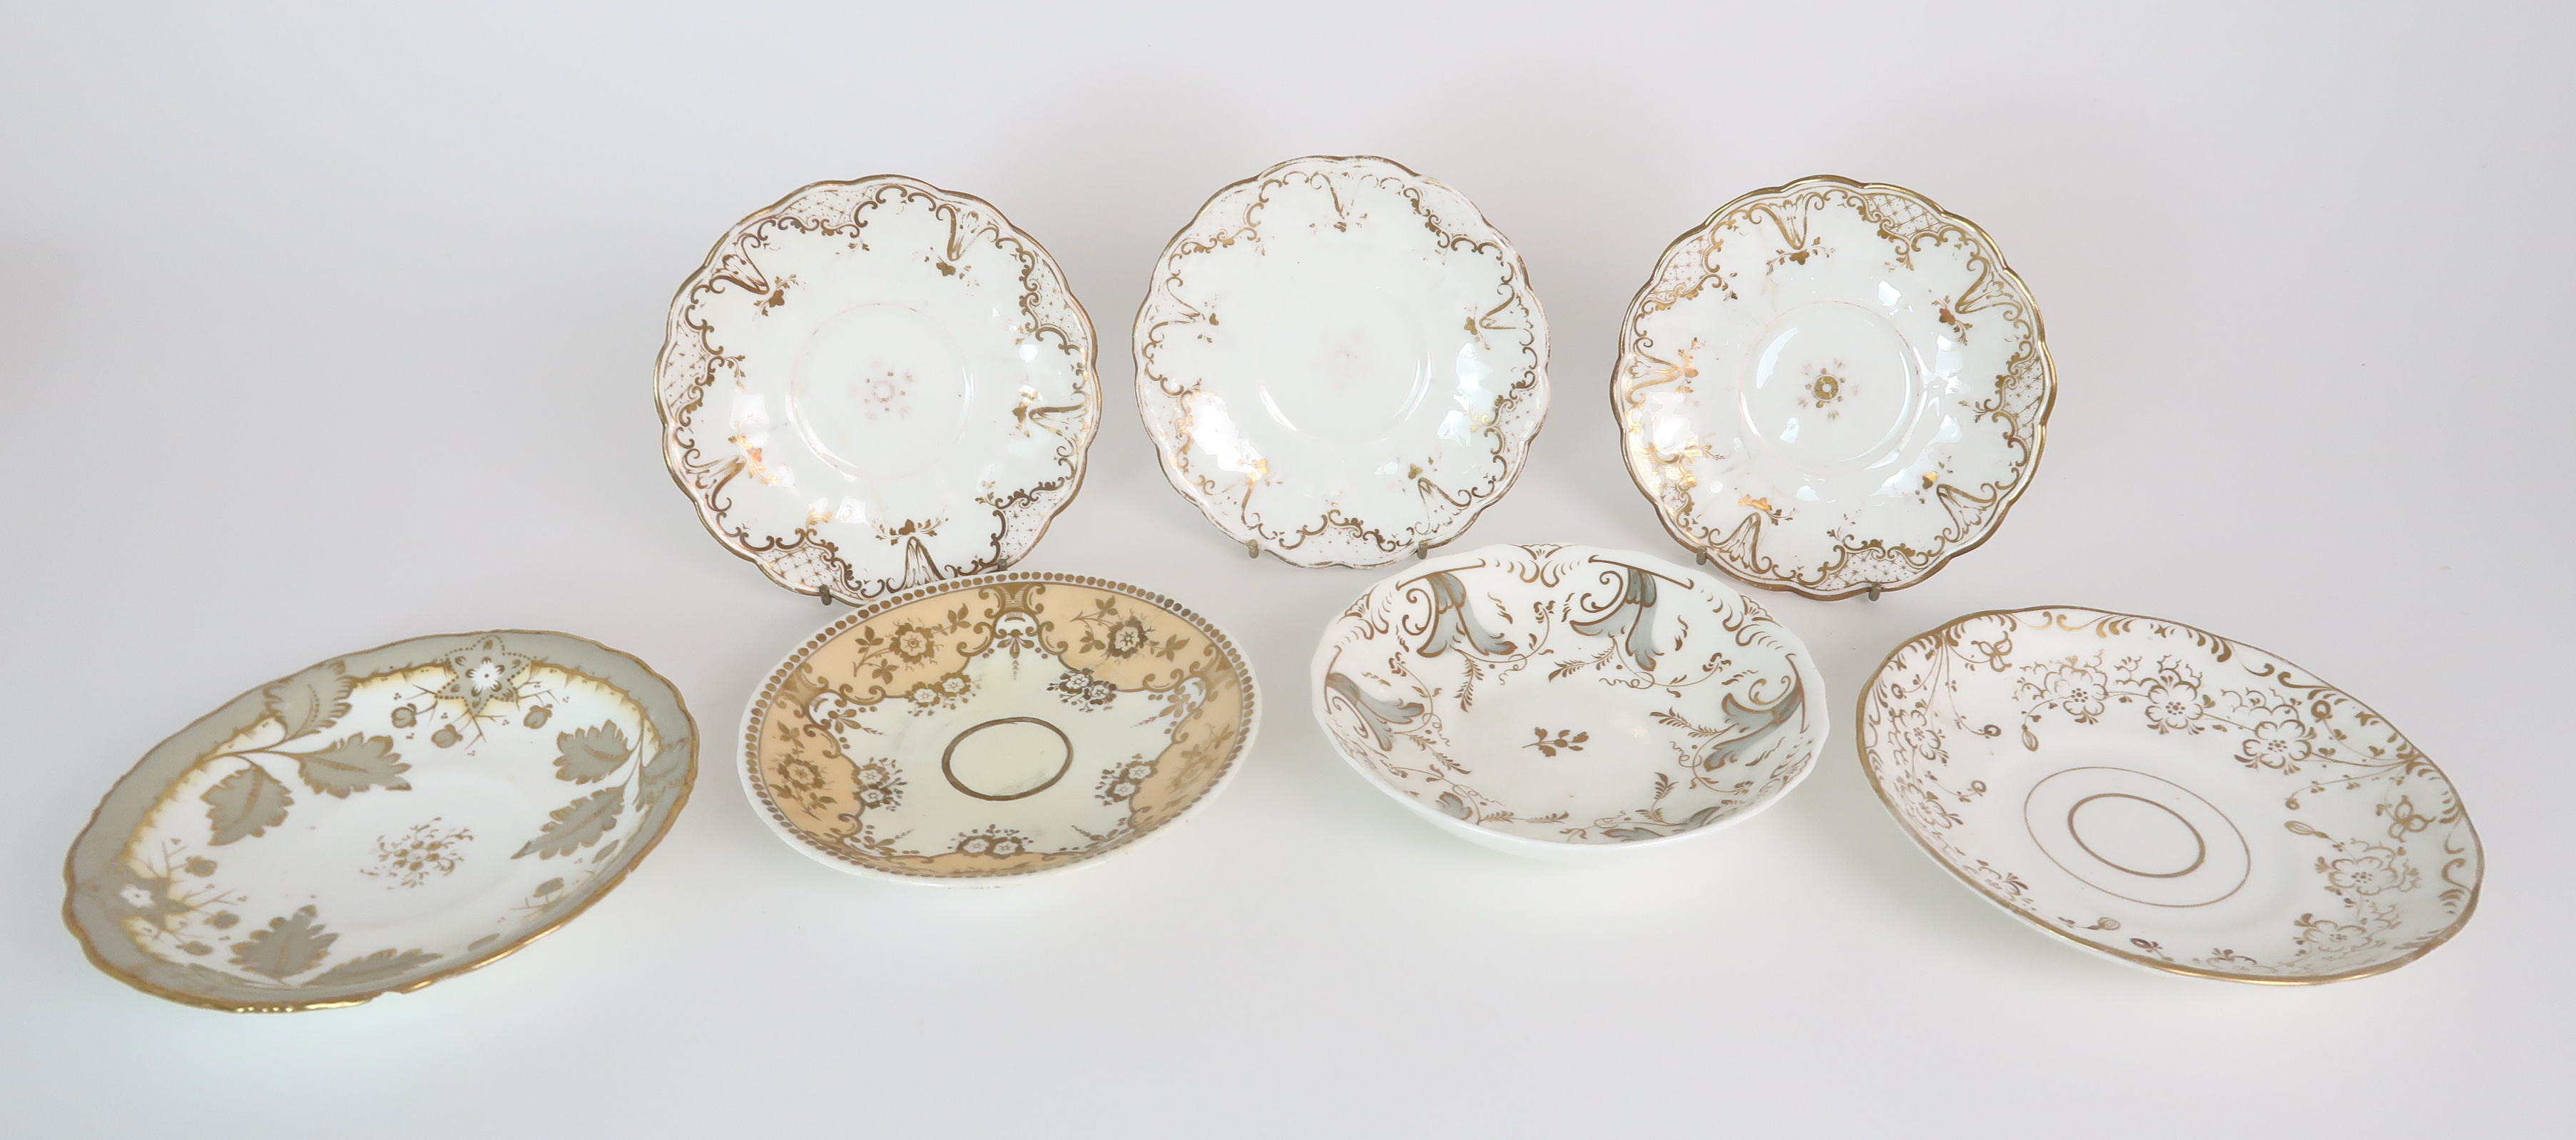 A COLLECTION OF 19TH CENTURY ENGLISH TEA AND COFFEE WARES the white ground with either grey and gilt - Image 22 of 22